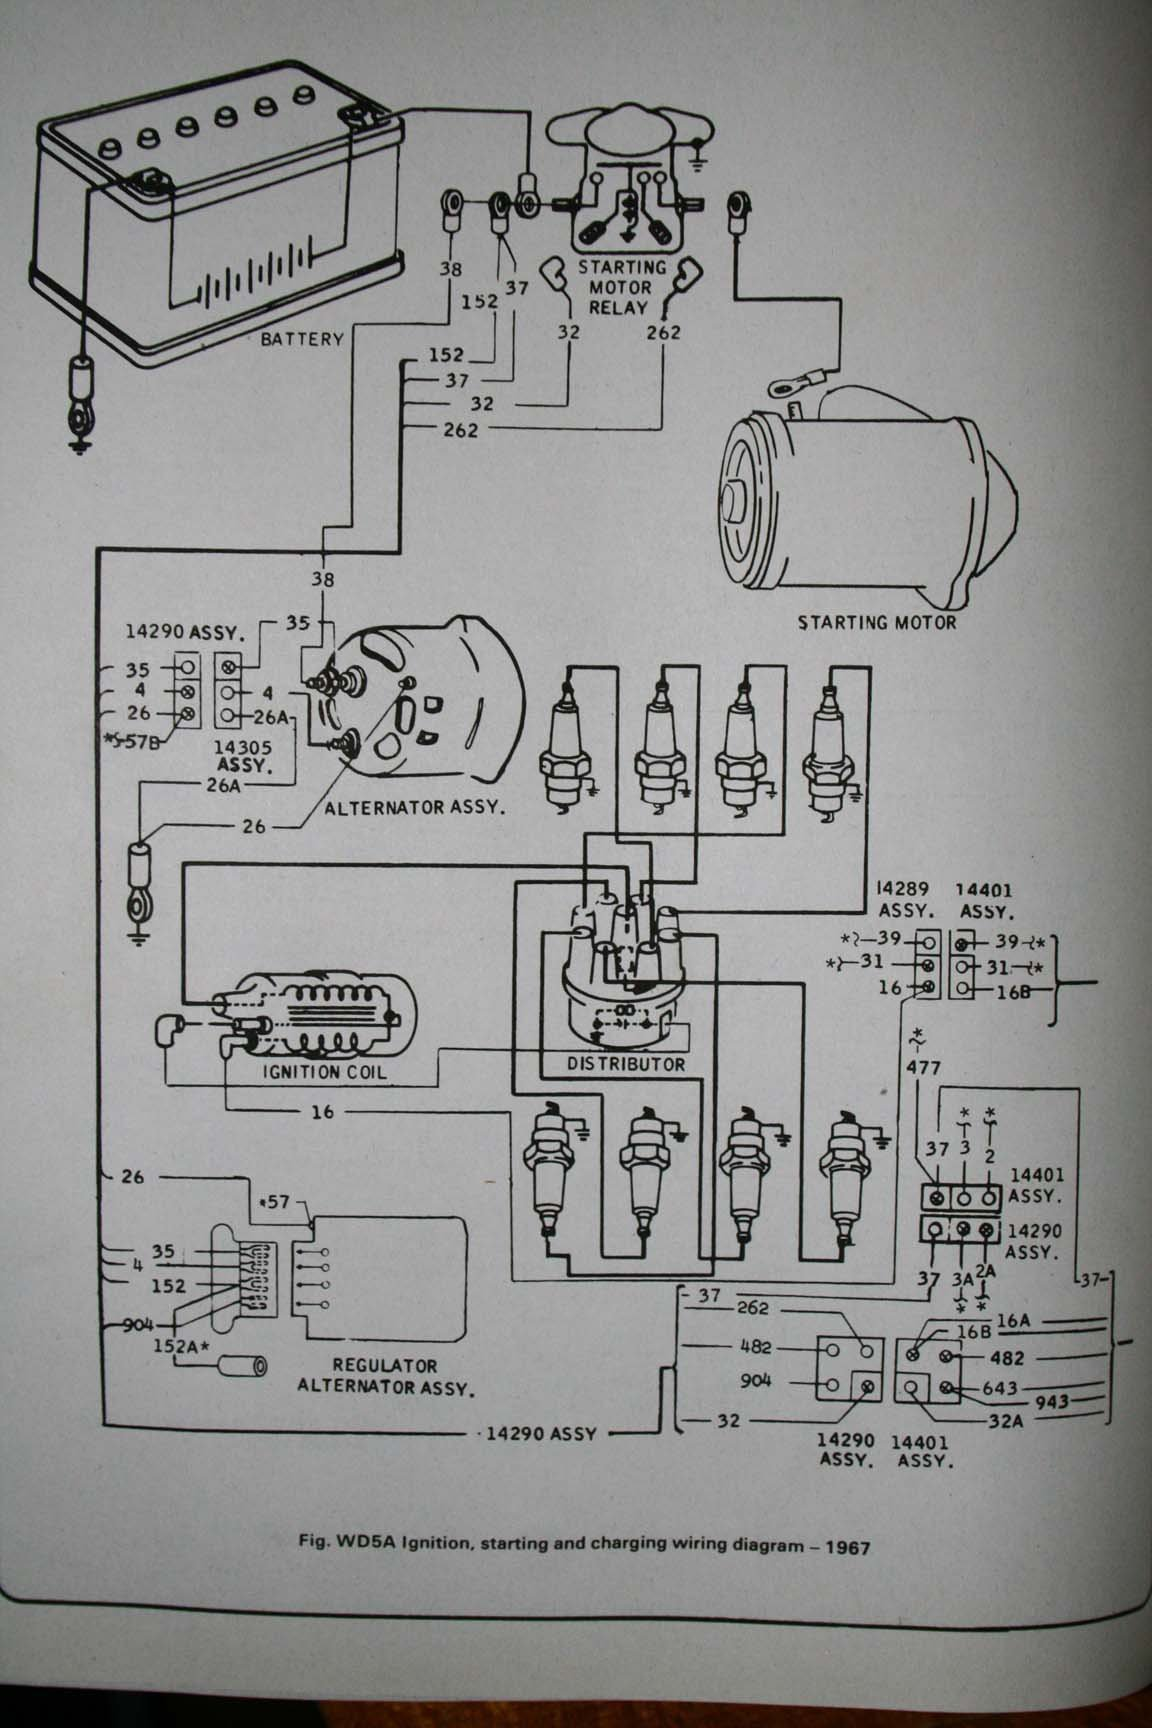 hight resolution of 1967 ford mustang voltage regulator wiring diagram wiring diagram1978 ford voltage regulator wiring diagram wiring libraryclick